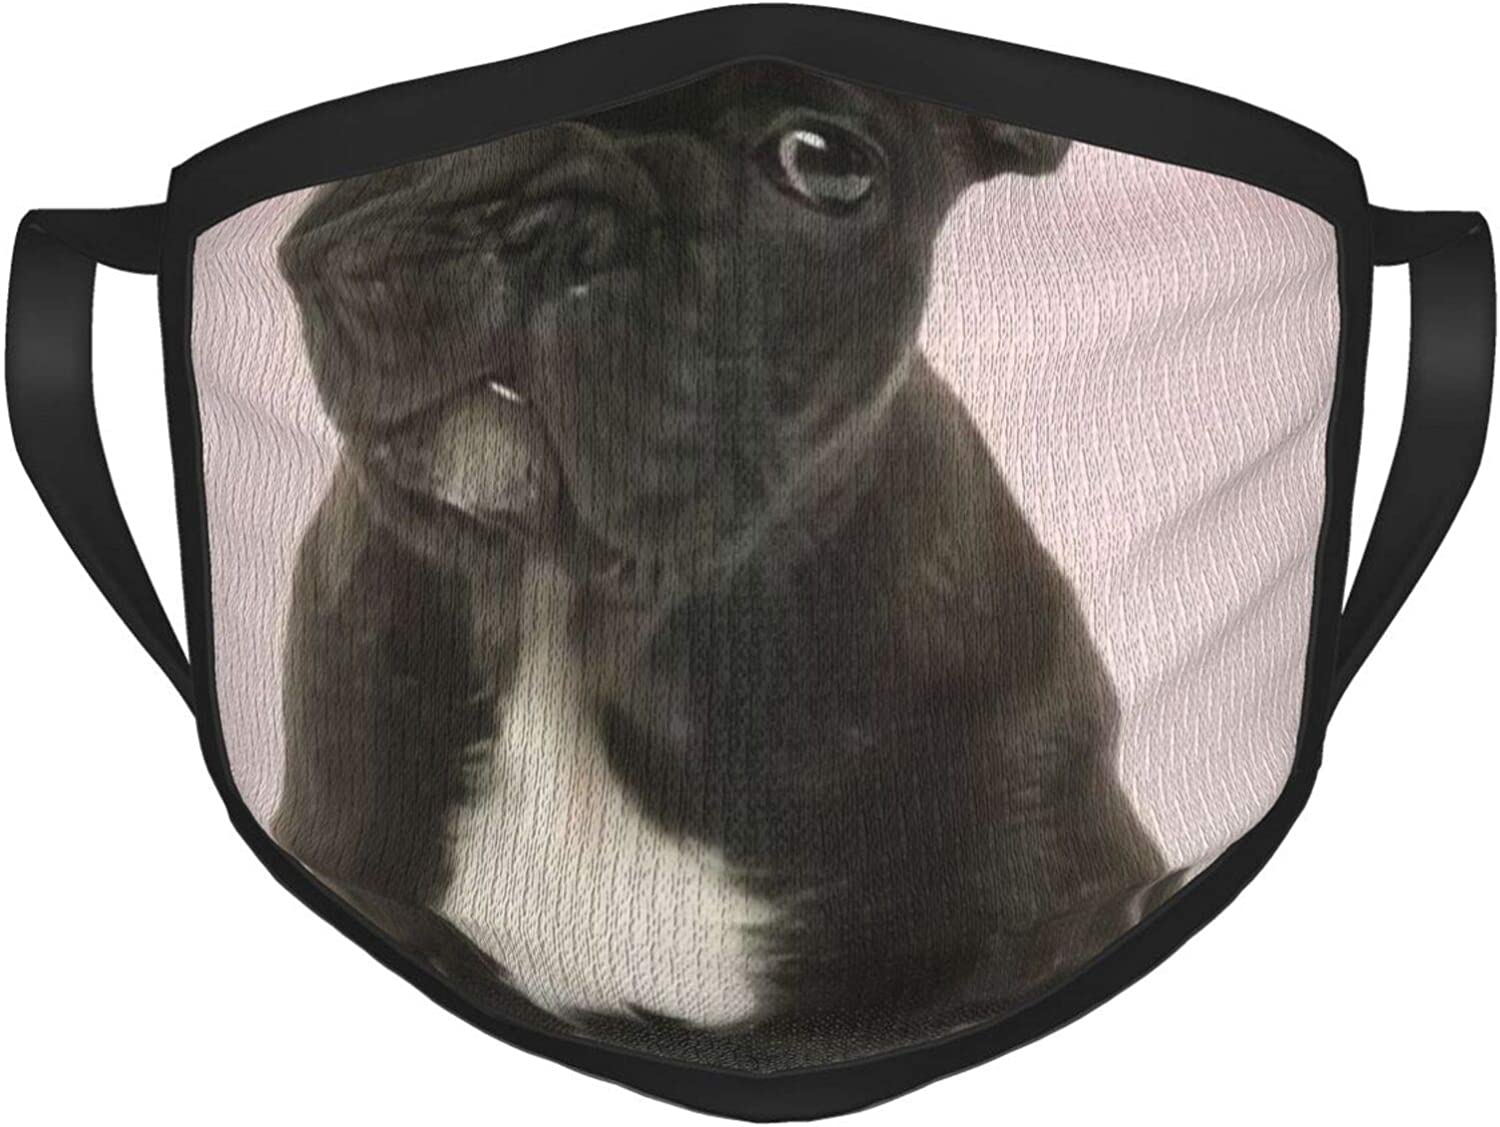 LANJYF 2 Packs Reusable Mouth Wear, French Bulldog Puppy Cute Unisex Facial Covering